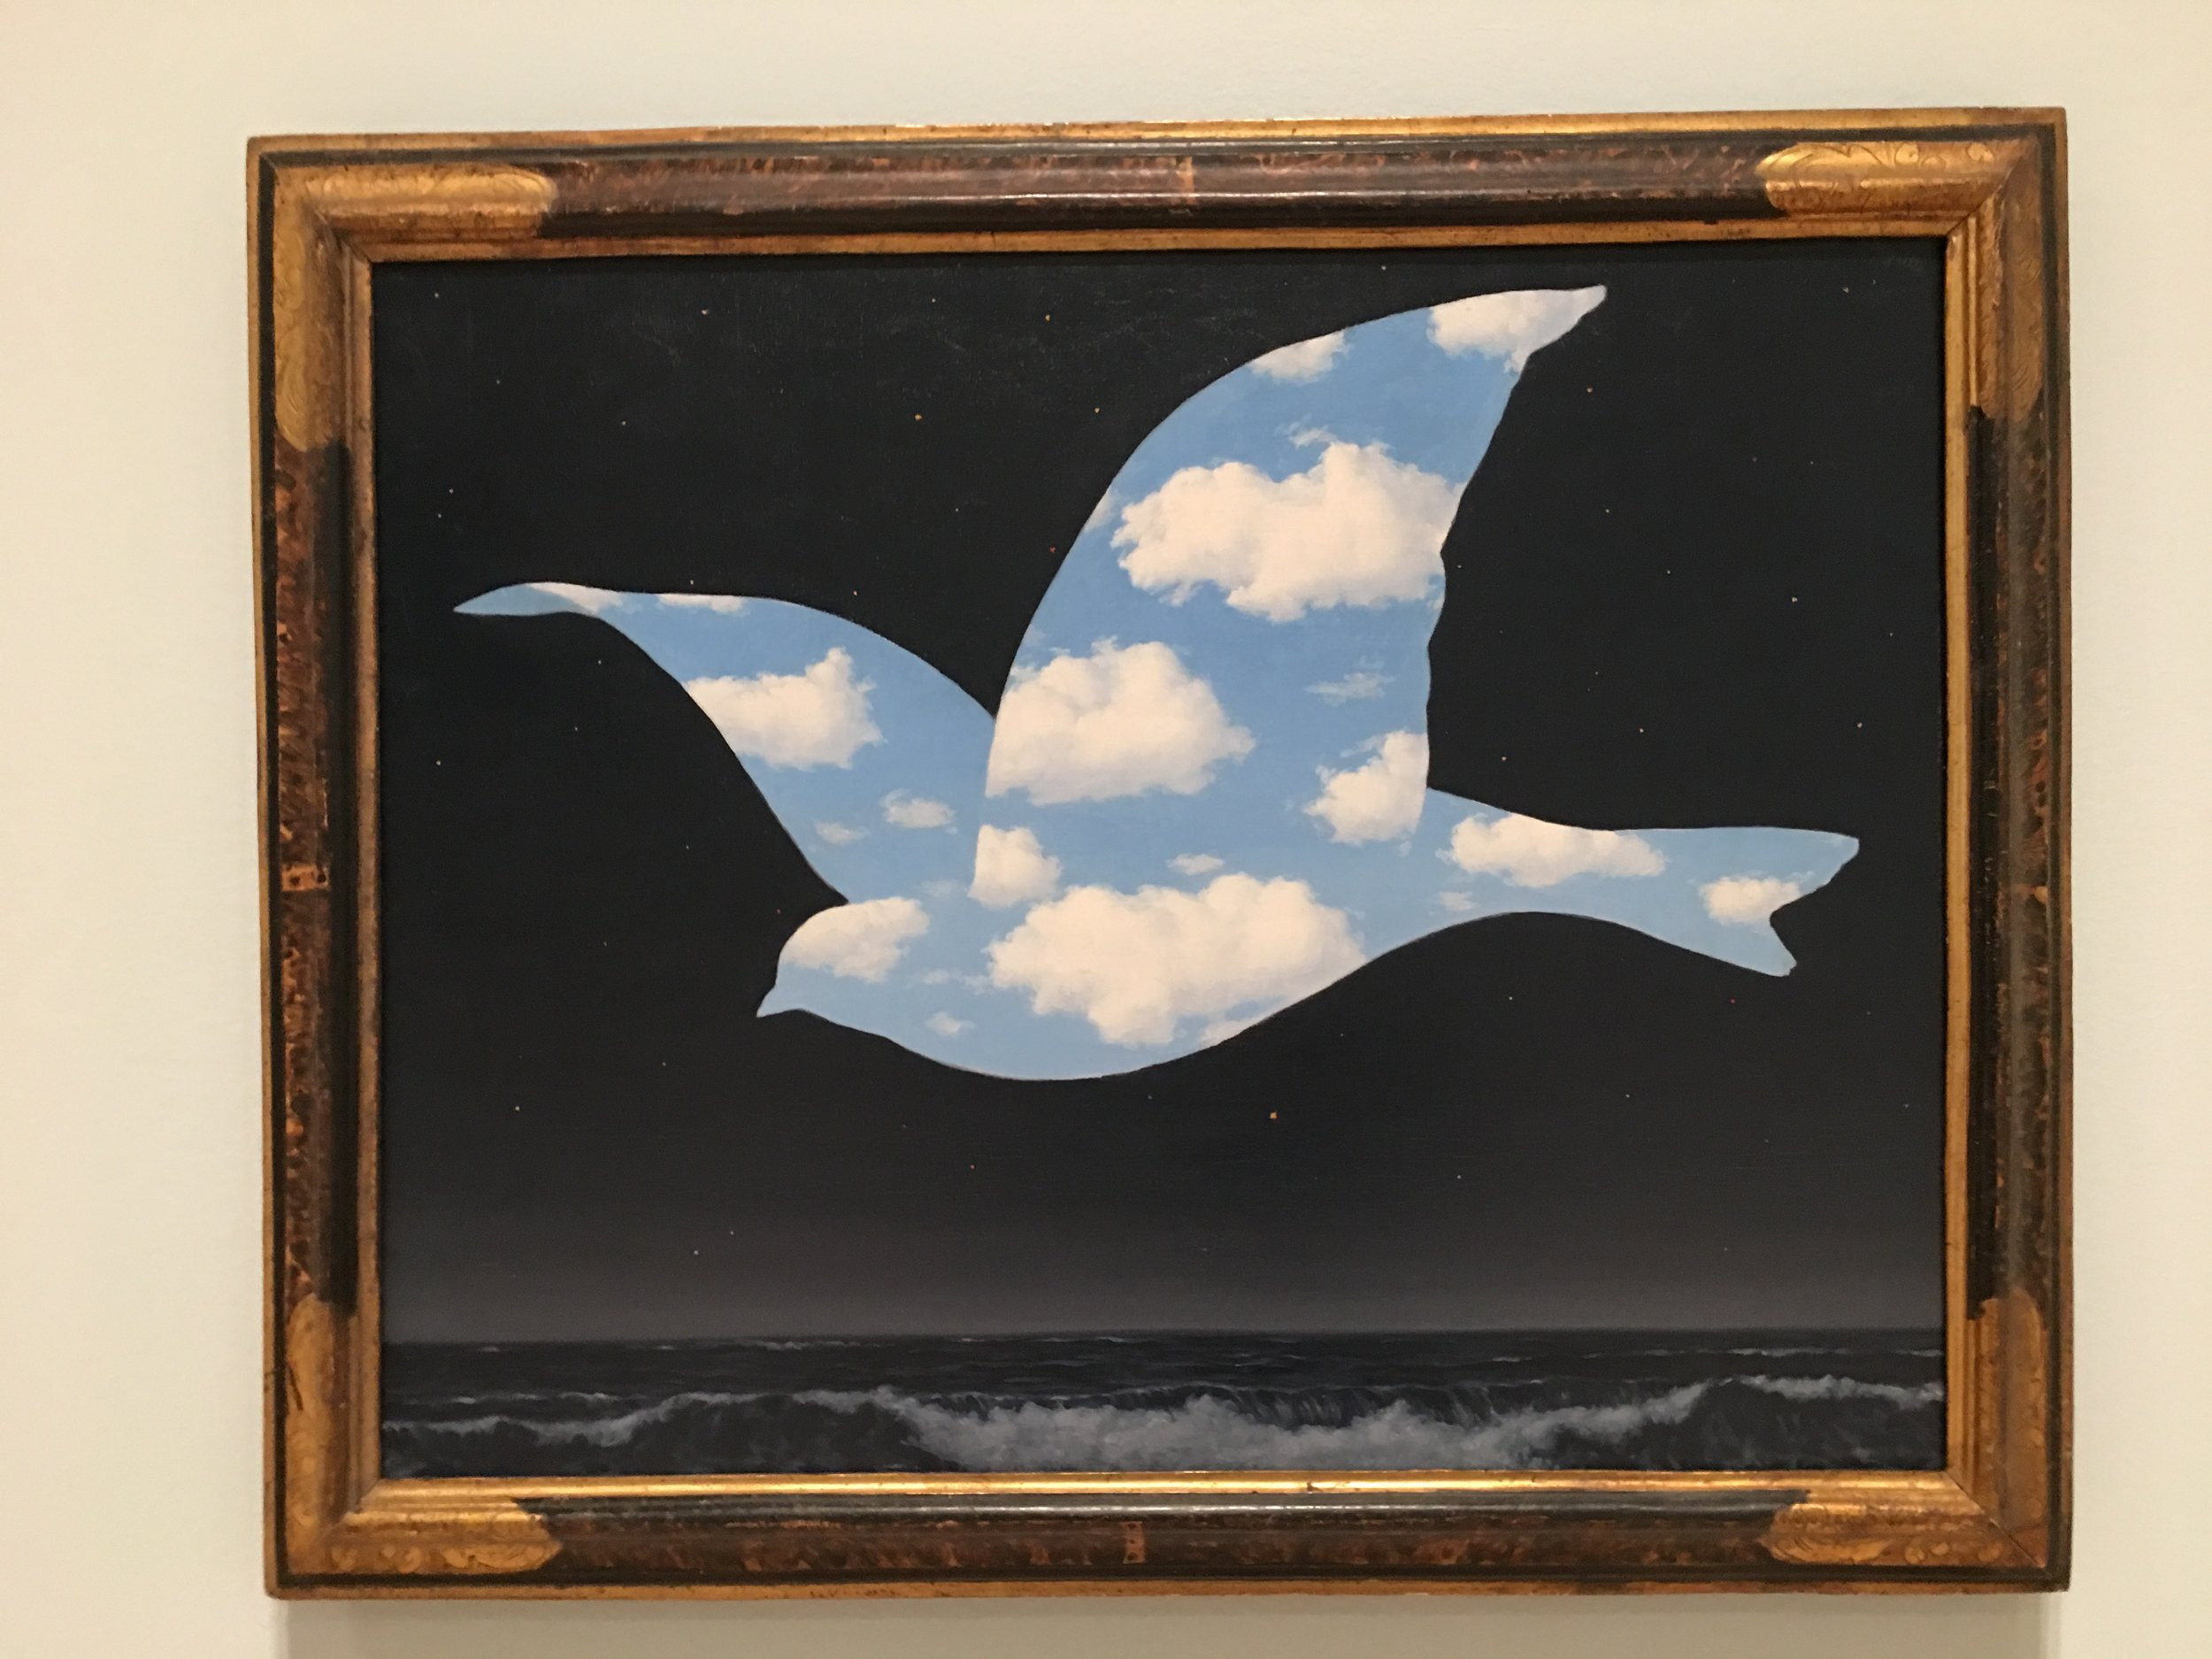 ReneMagritte1.com